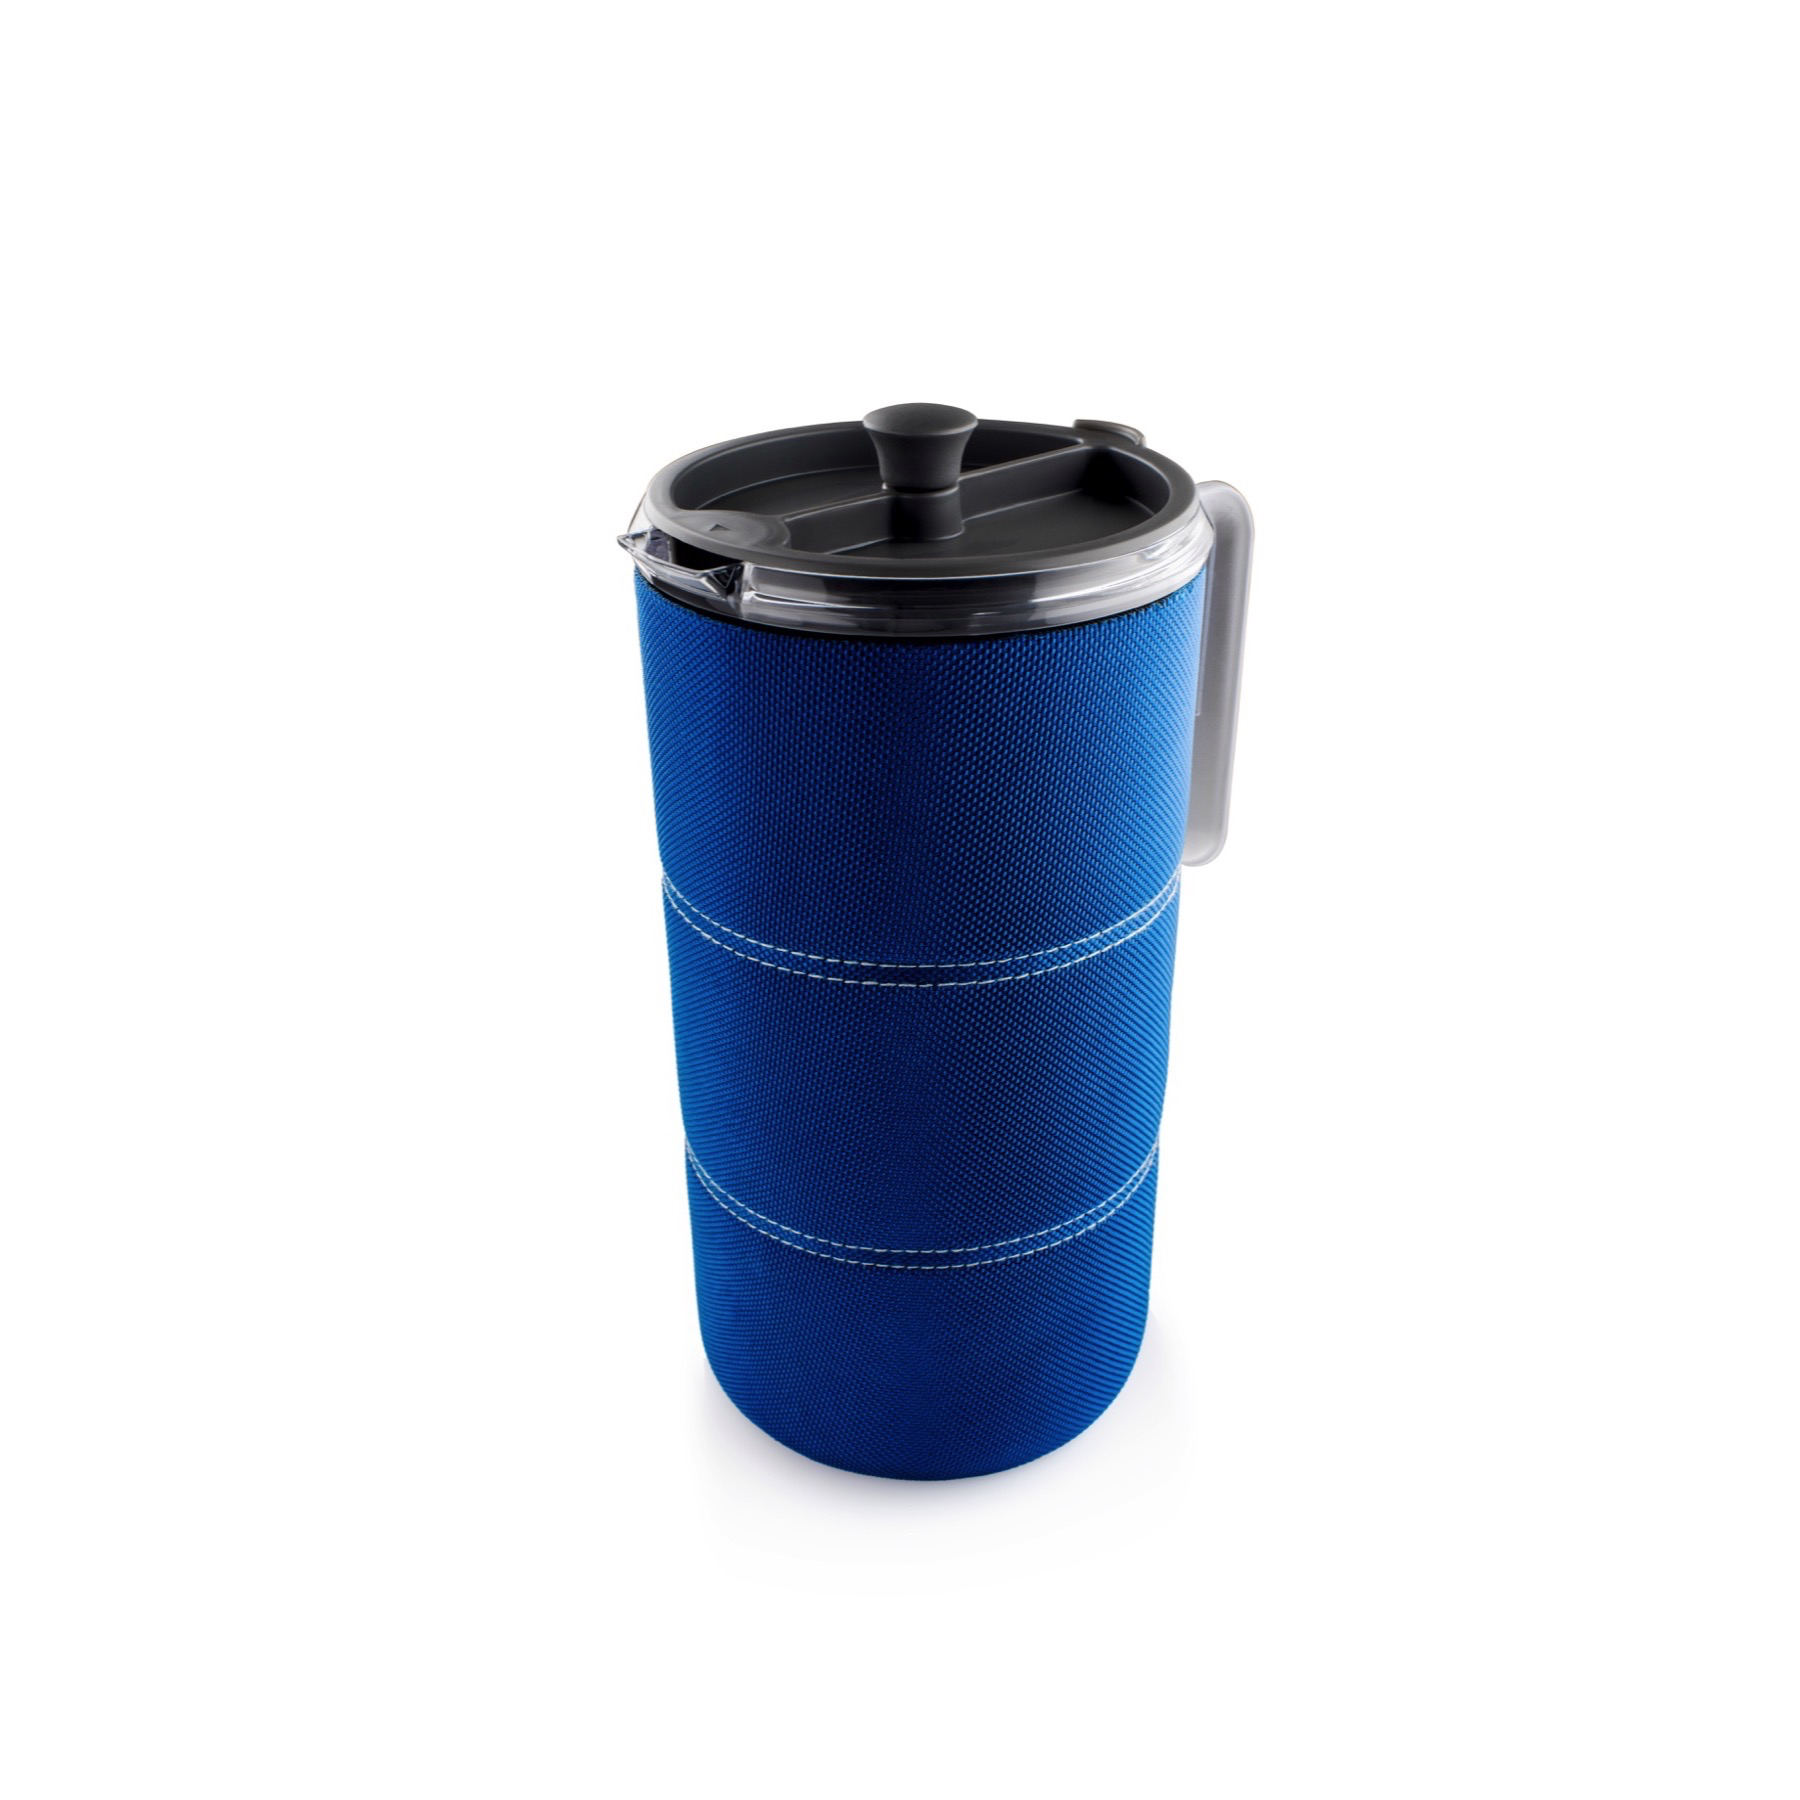 French Press Coffee Maker For Camping : GSI Outdoors 50oz Java Press Blue Portable French Press Coffee Maker Camping 90497000034 eBay